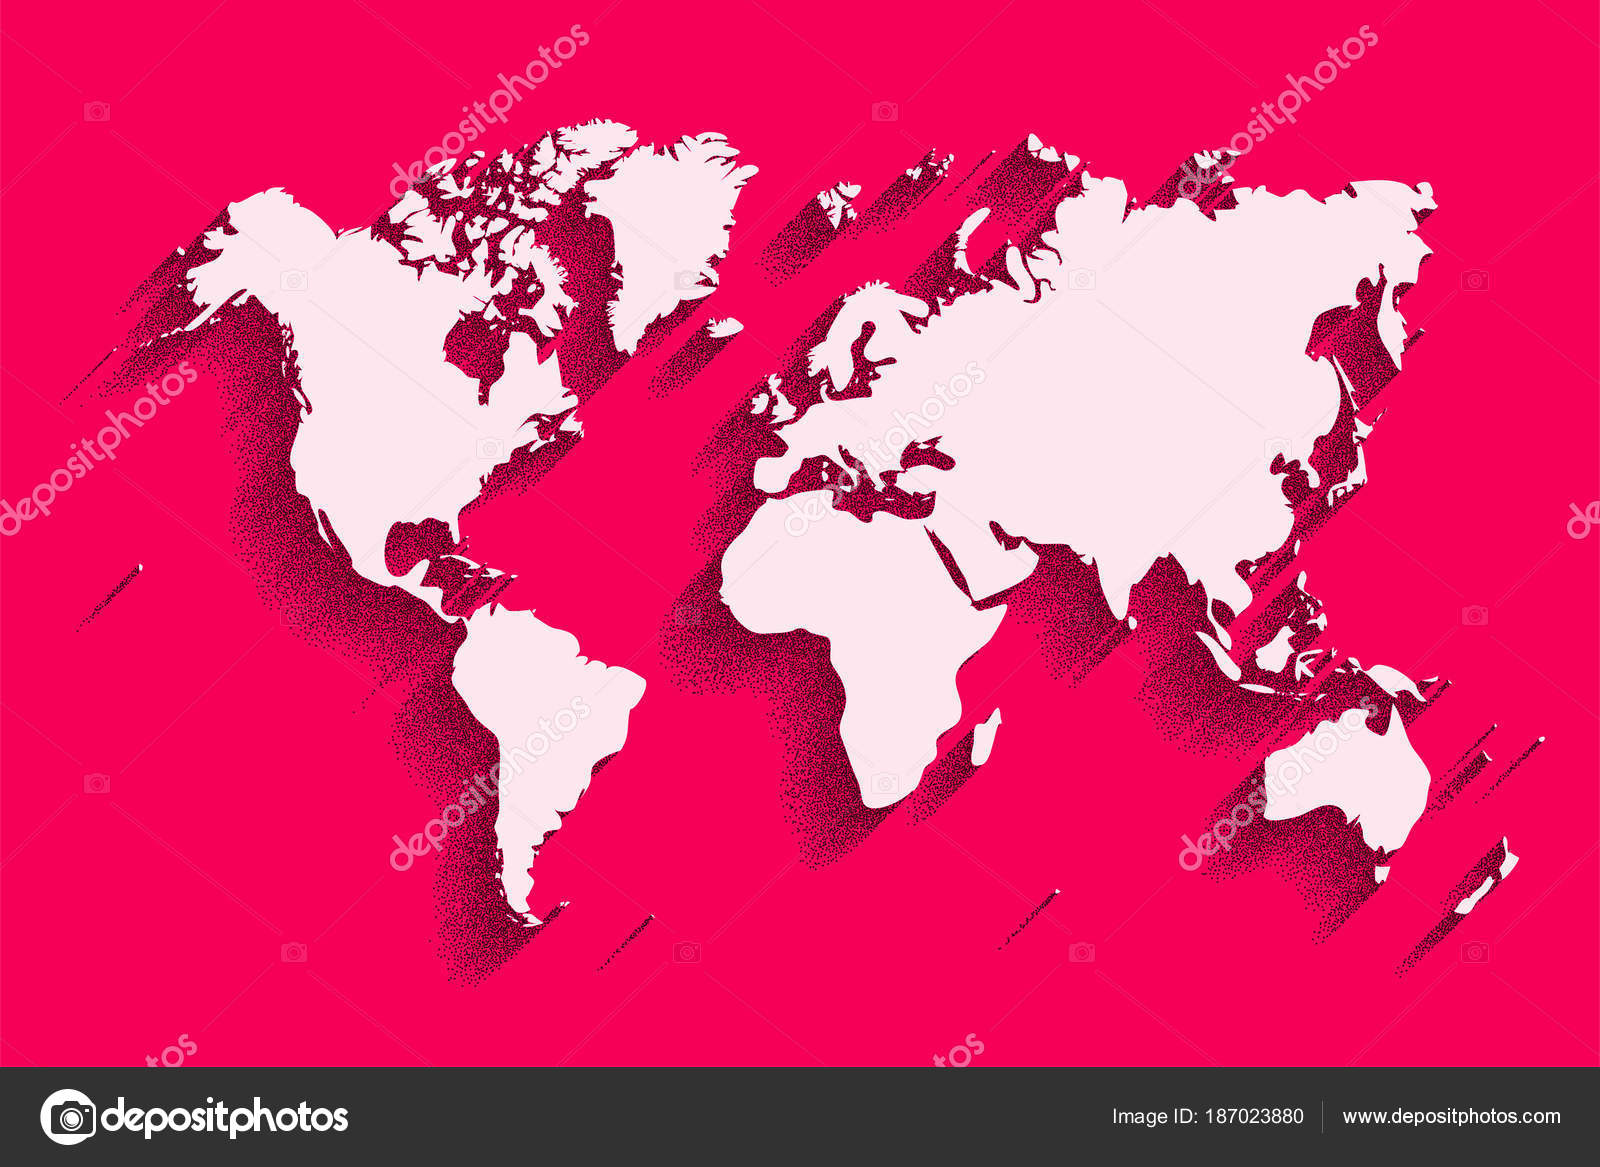 World map vector color background with shadow stock vector world map vector color background with shadow stock vector gumiabroncs